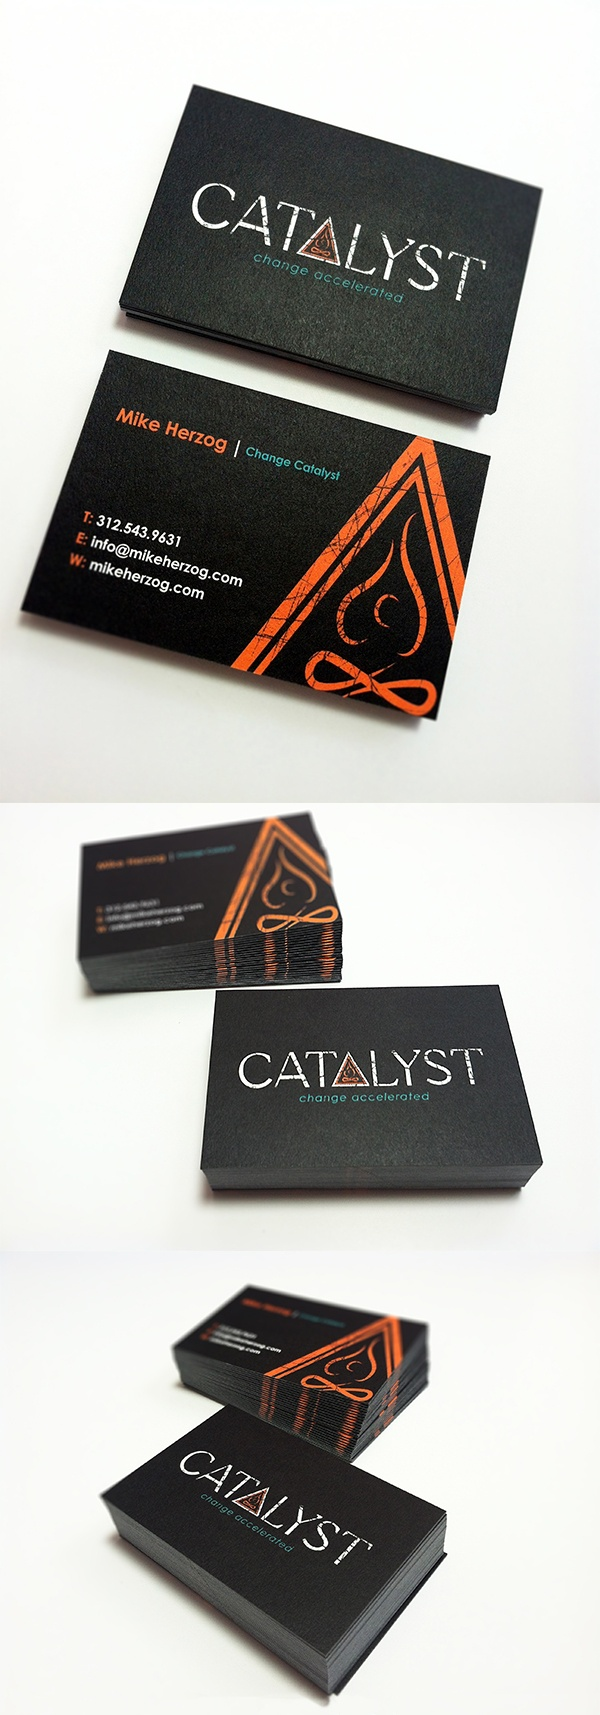 """New business card design for a great company out of Houston, Texas.  """"Catalyst"""", a life coach company. Check them out a www.mikeherzog.com"""